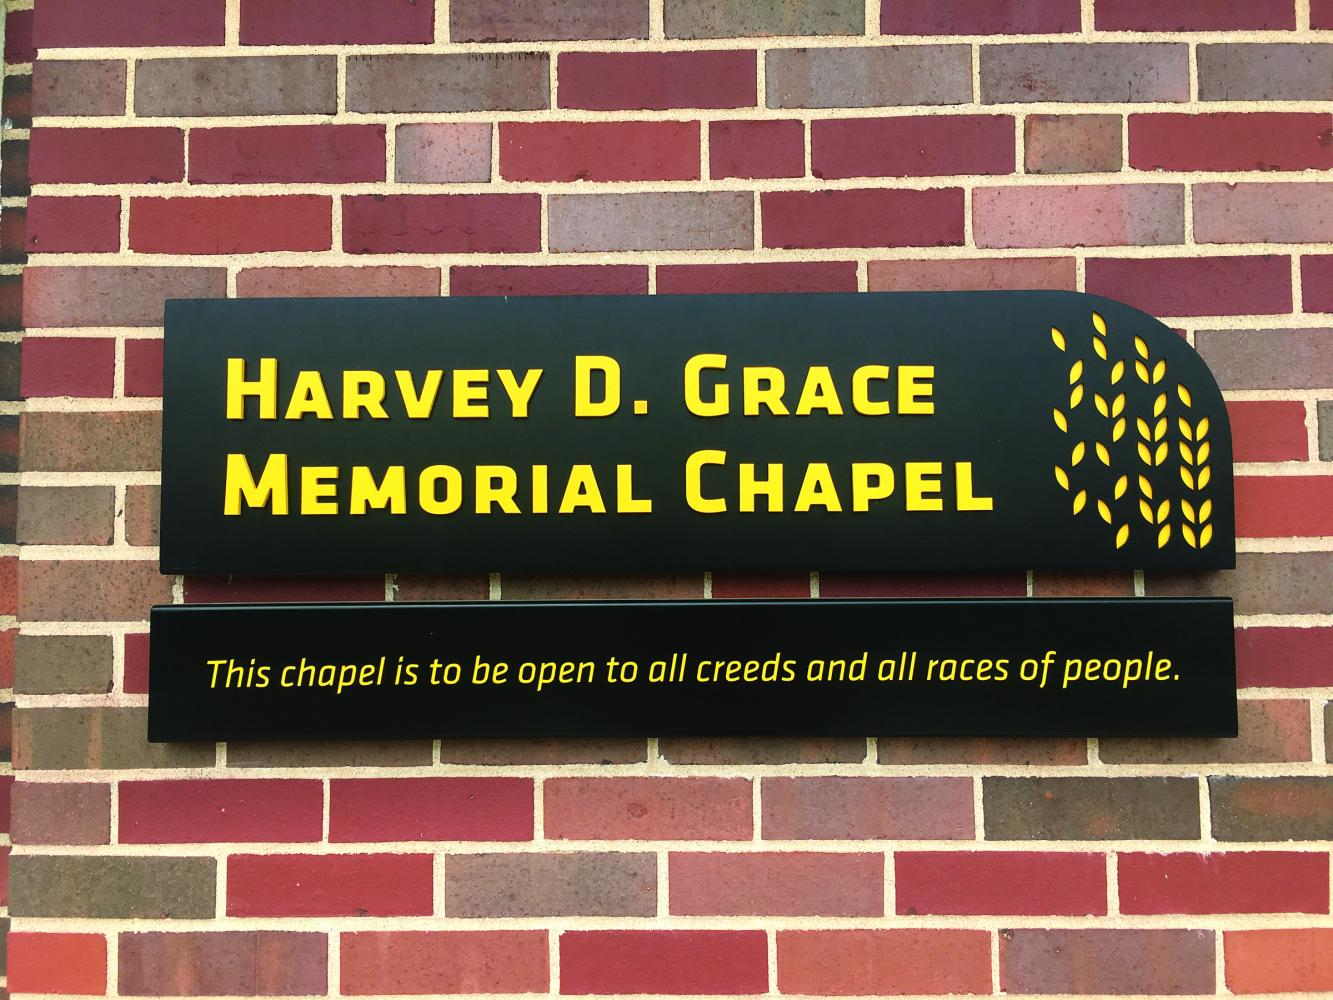 The new sign outside the Harvey D. Grace Memorial Chapel reads